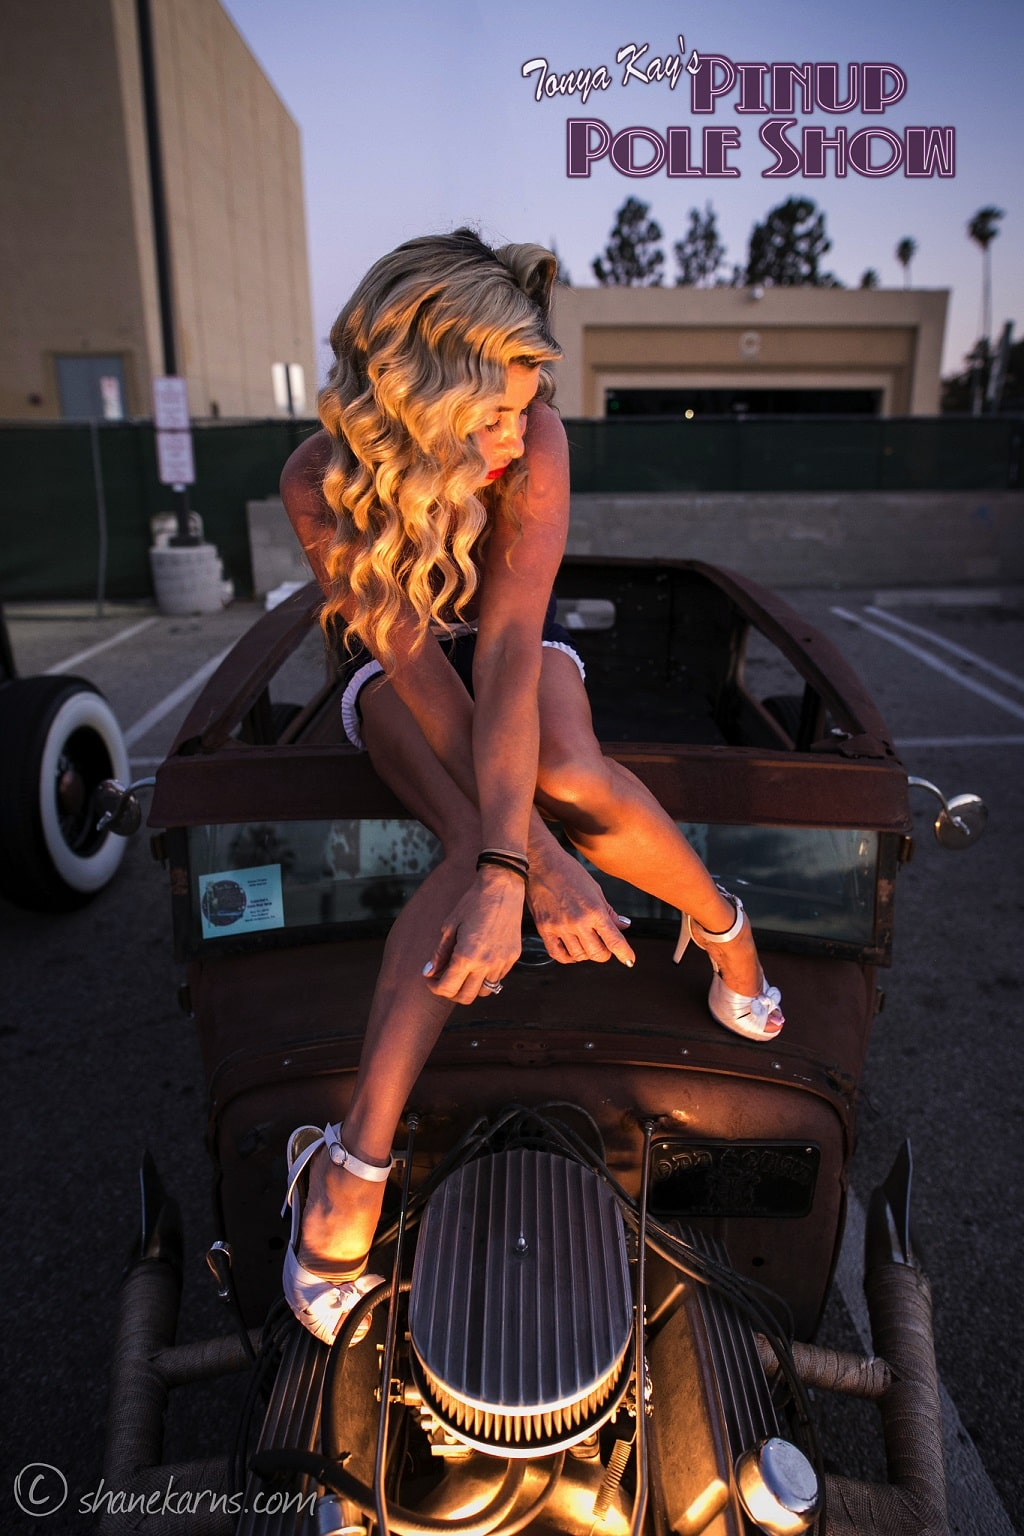 Pinup Pole Show Pinup of the Week: Heather Lou and Monica Kay with a